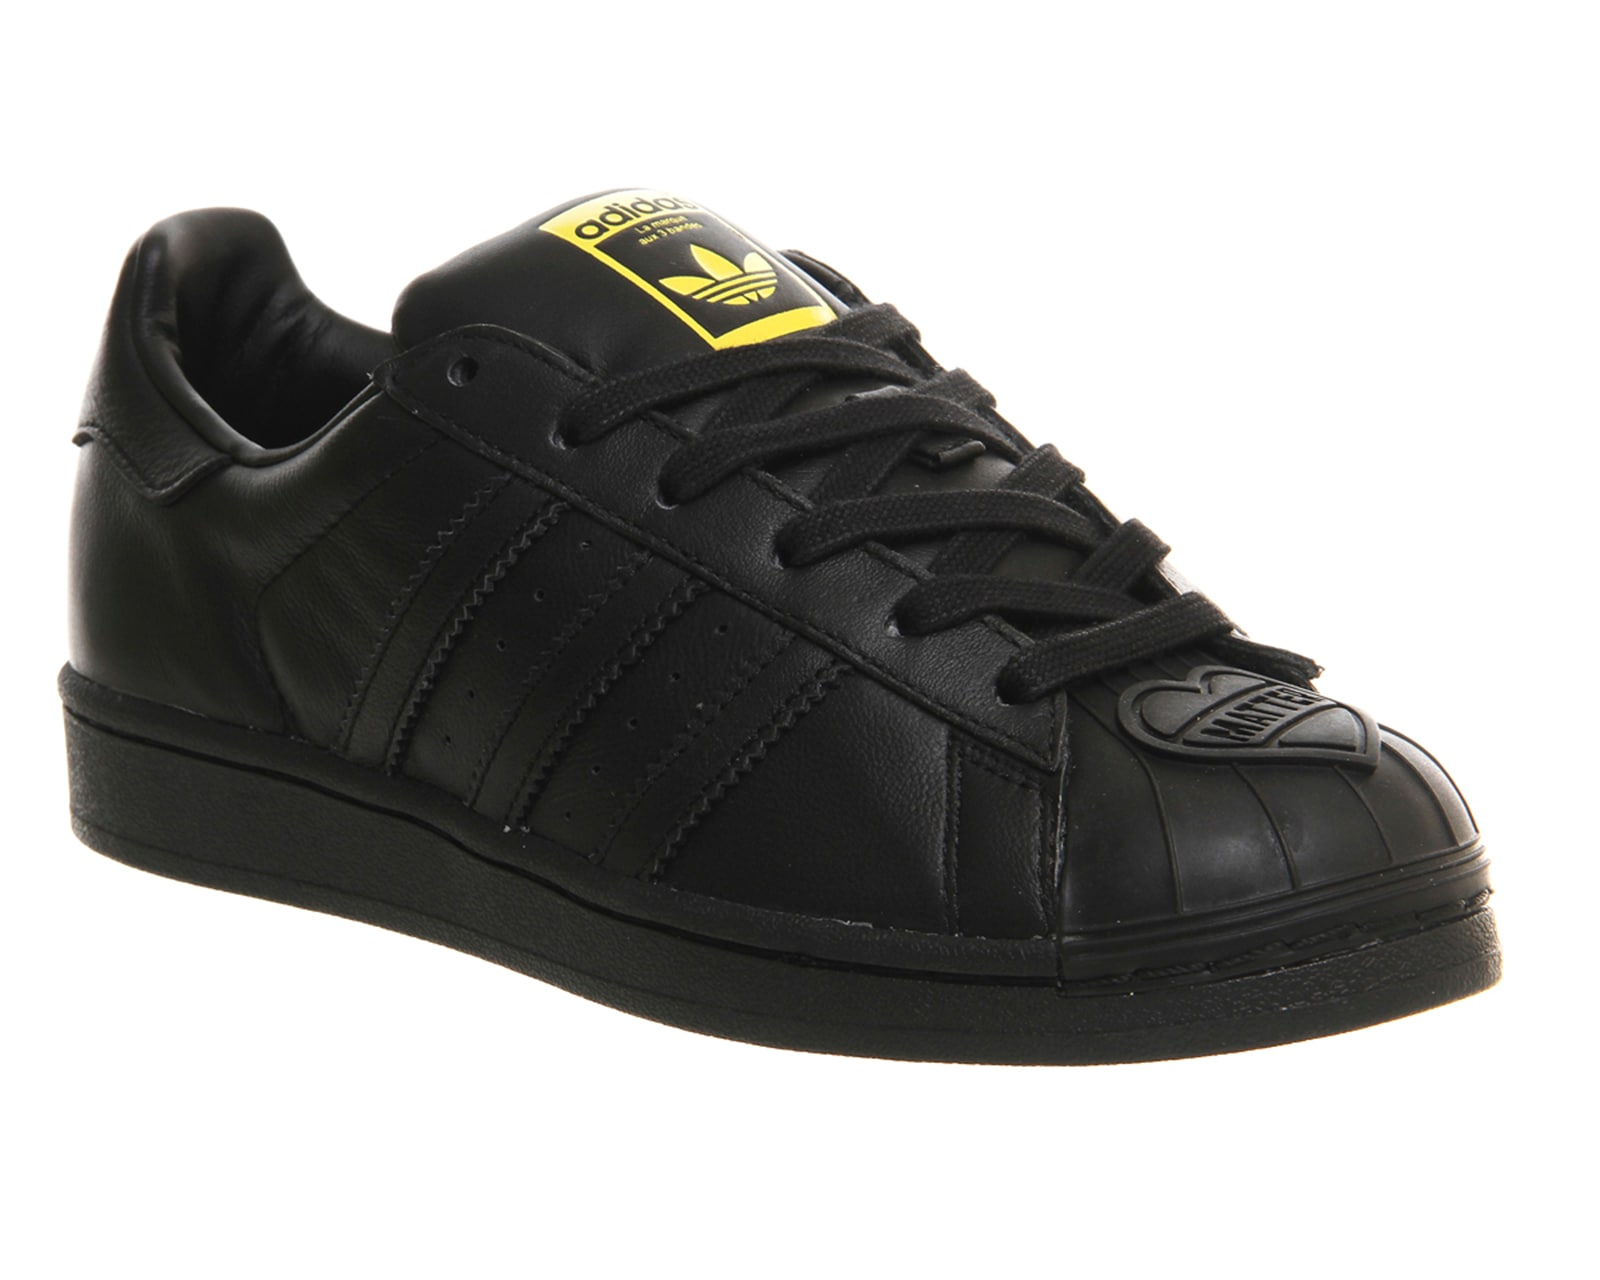 Adidas Training Shoes With Toes